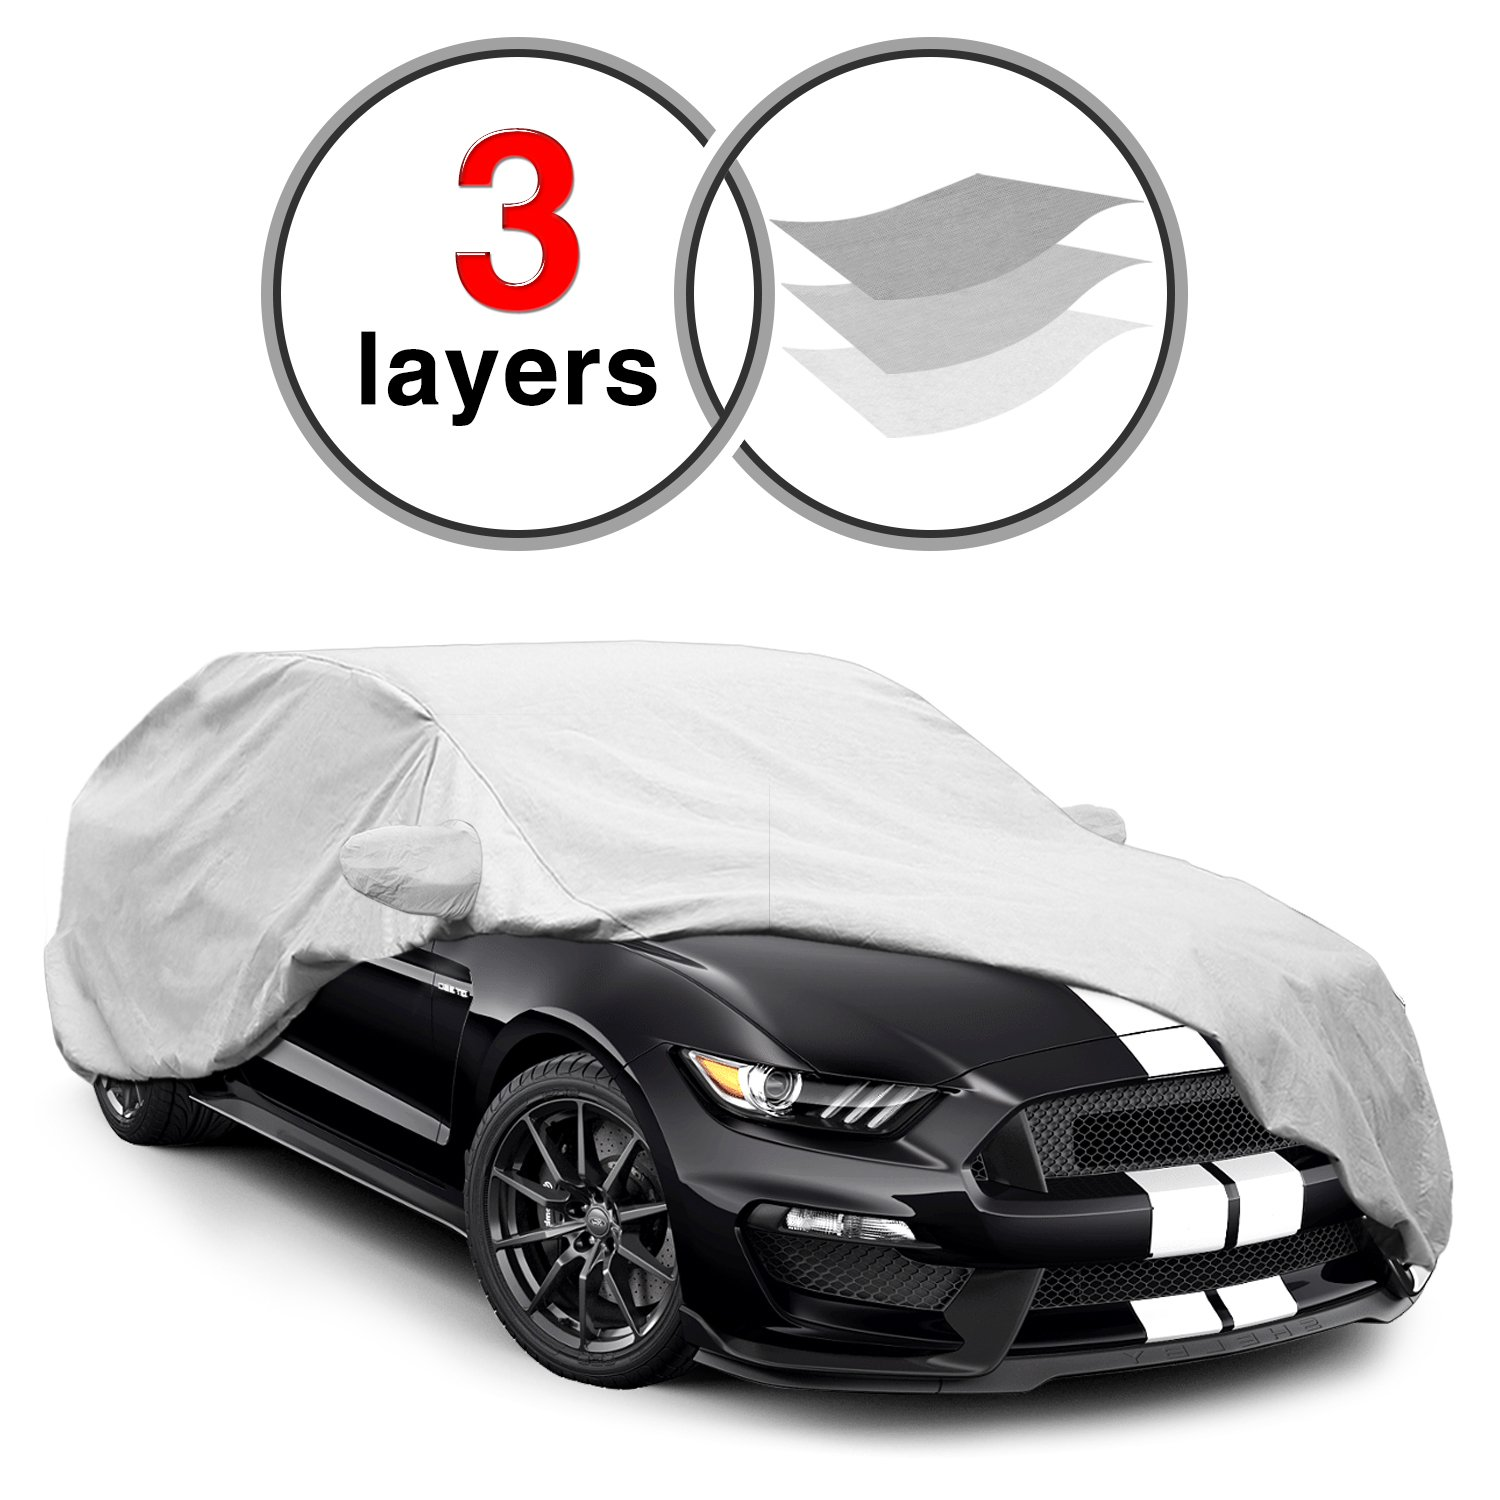 Ford Mustang Car Cover for 2015-2016, 3 Layers KAKIT Waterproof Windproof Dustproof Scratch Proof Custom Fit Car Cover for Ford Mustang, Free Windproof Ribbon 4336324862